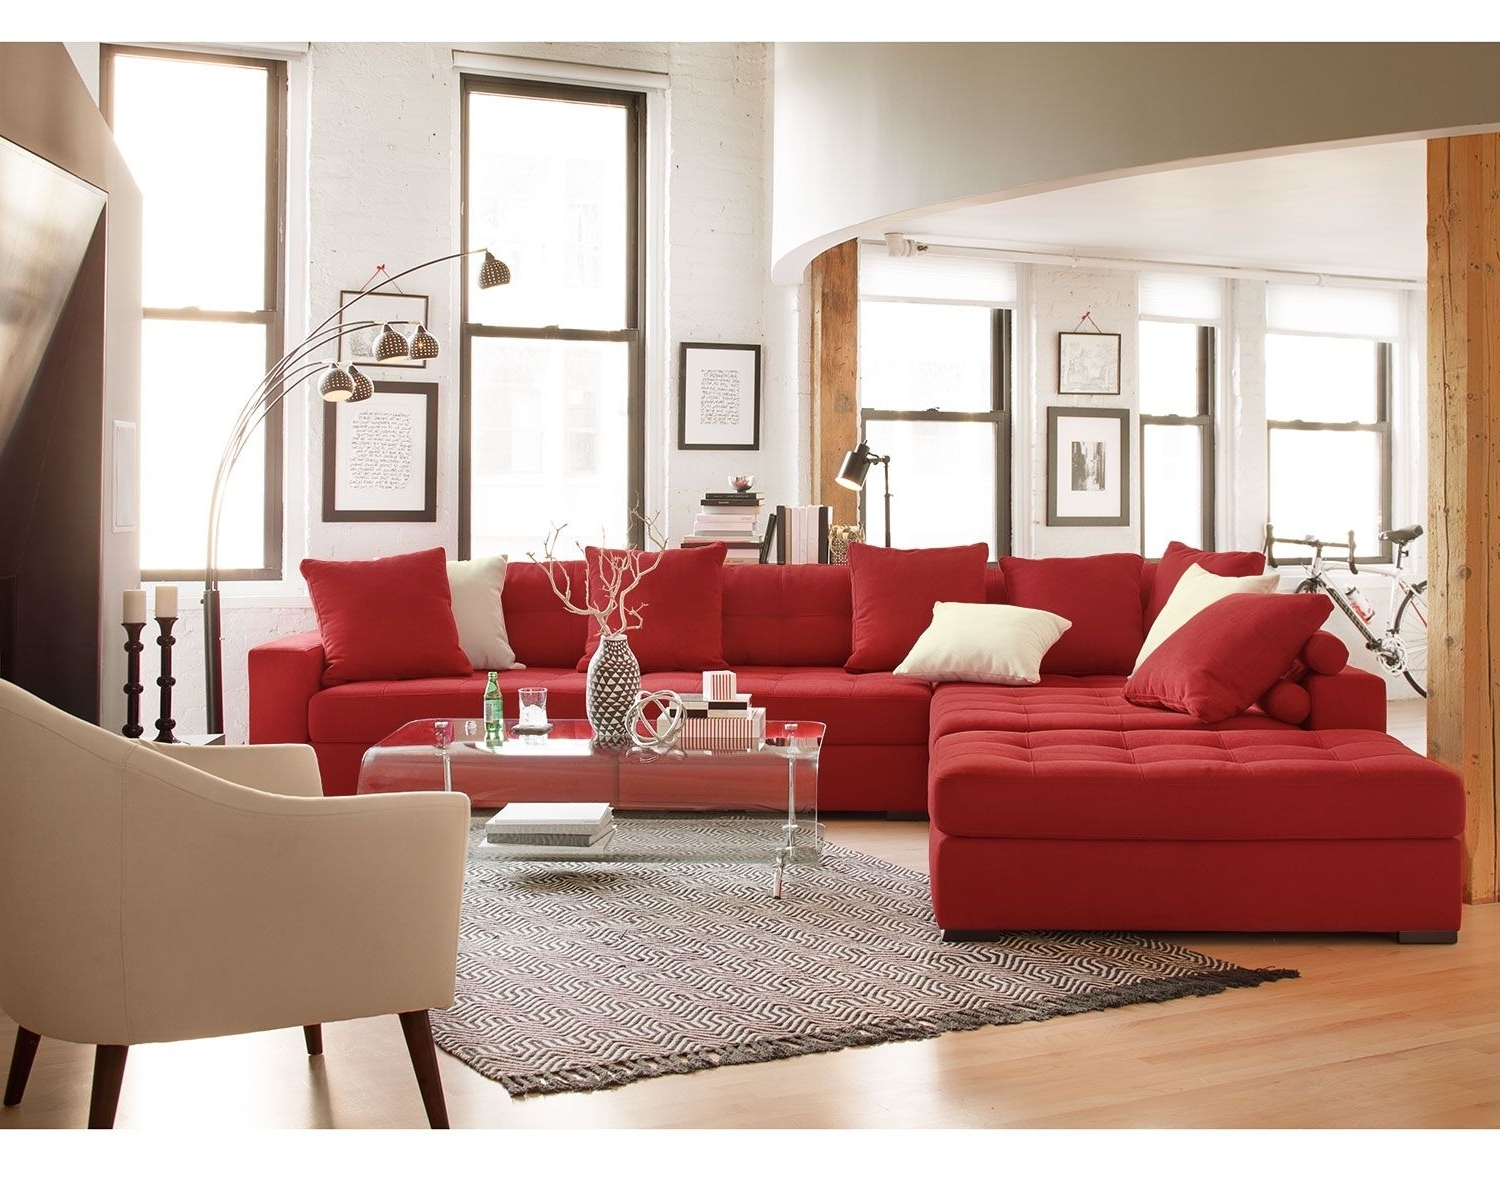 Brilliant Explore Photos Of Sectional Sofas That Can Be Rearranged Onthecornerstone Fun Painted Chair Ideas Images Onthecornerstoneorg